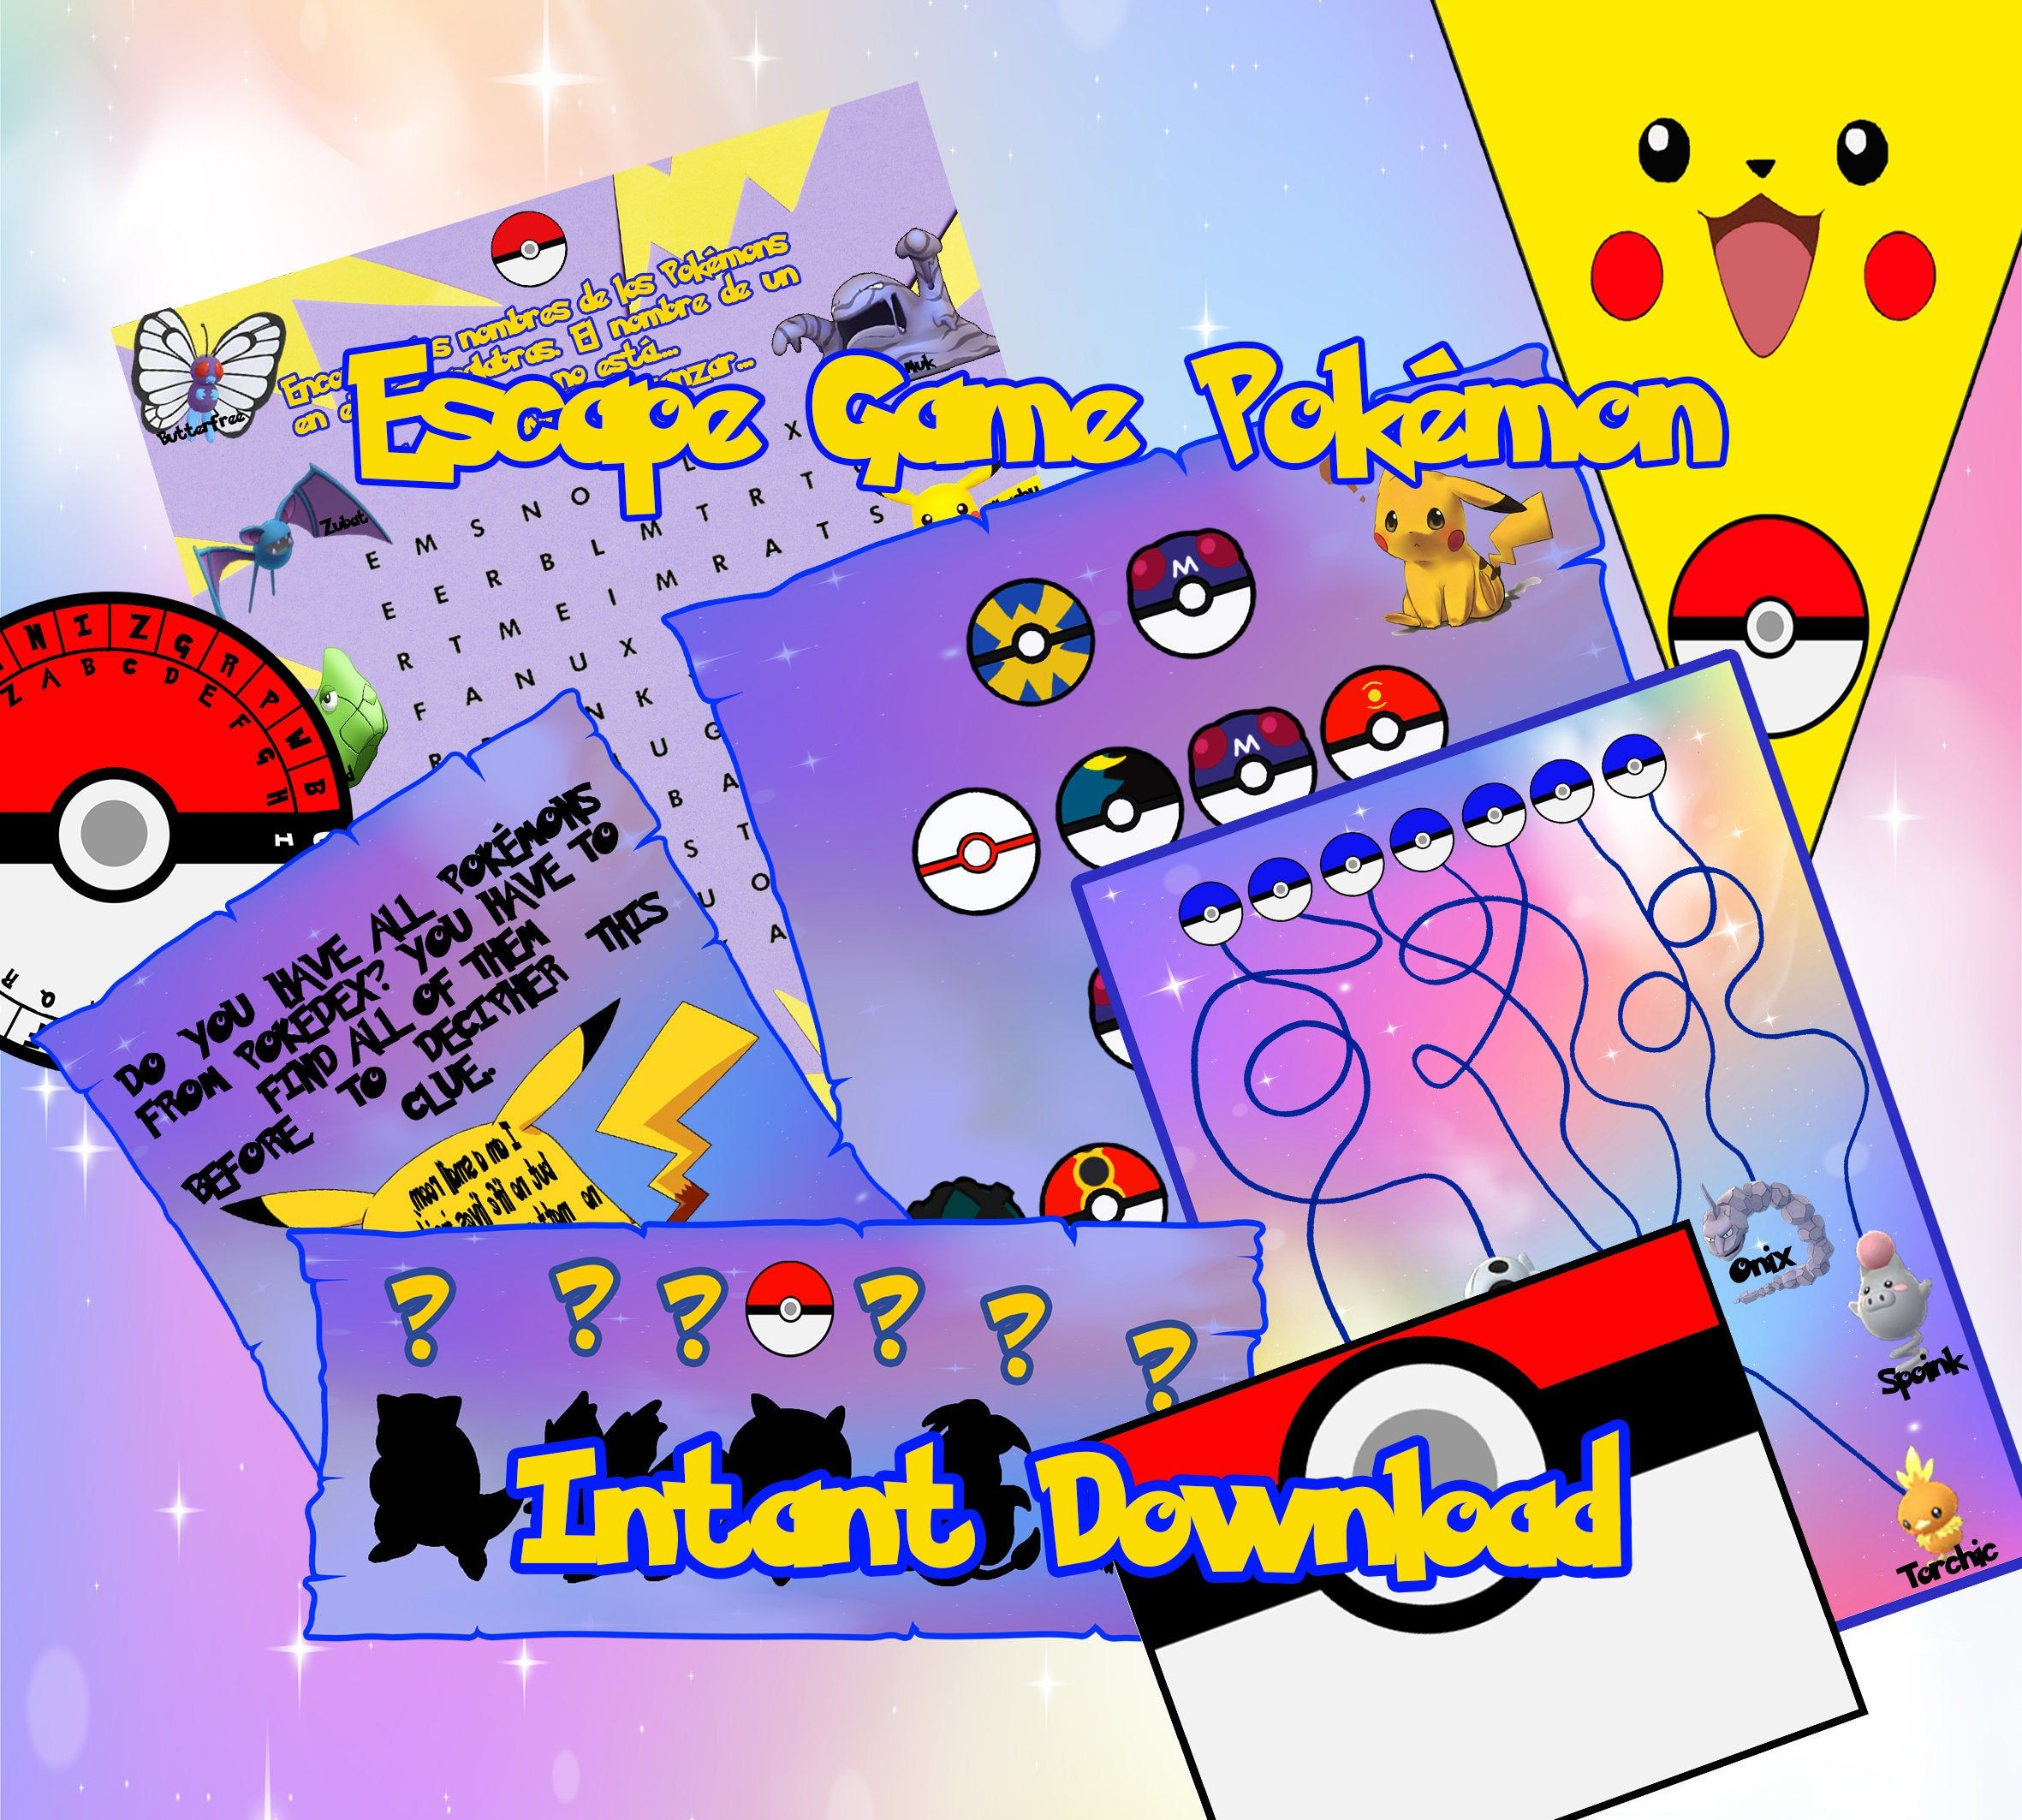 Escape Room Pokemon Game Hunt Print And Play Party Stay Home Birthday Family Pokeball Pikachu Kids Pokemon Go Mine Habitación De Escape Pokemon Go Pikachu